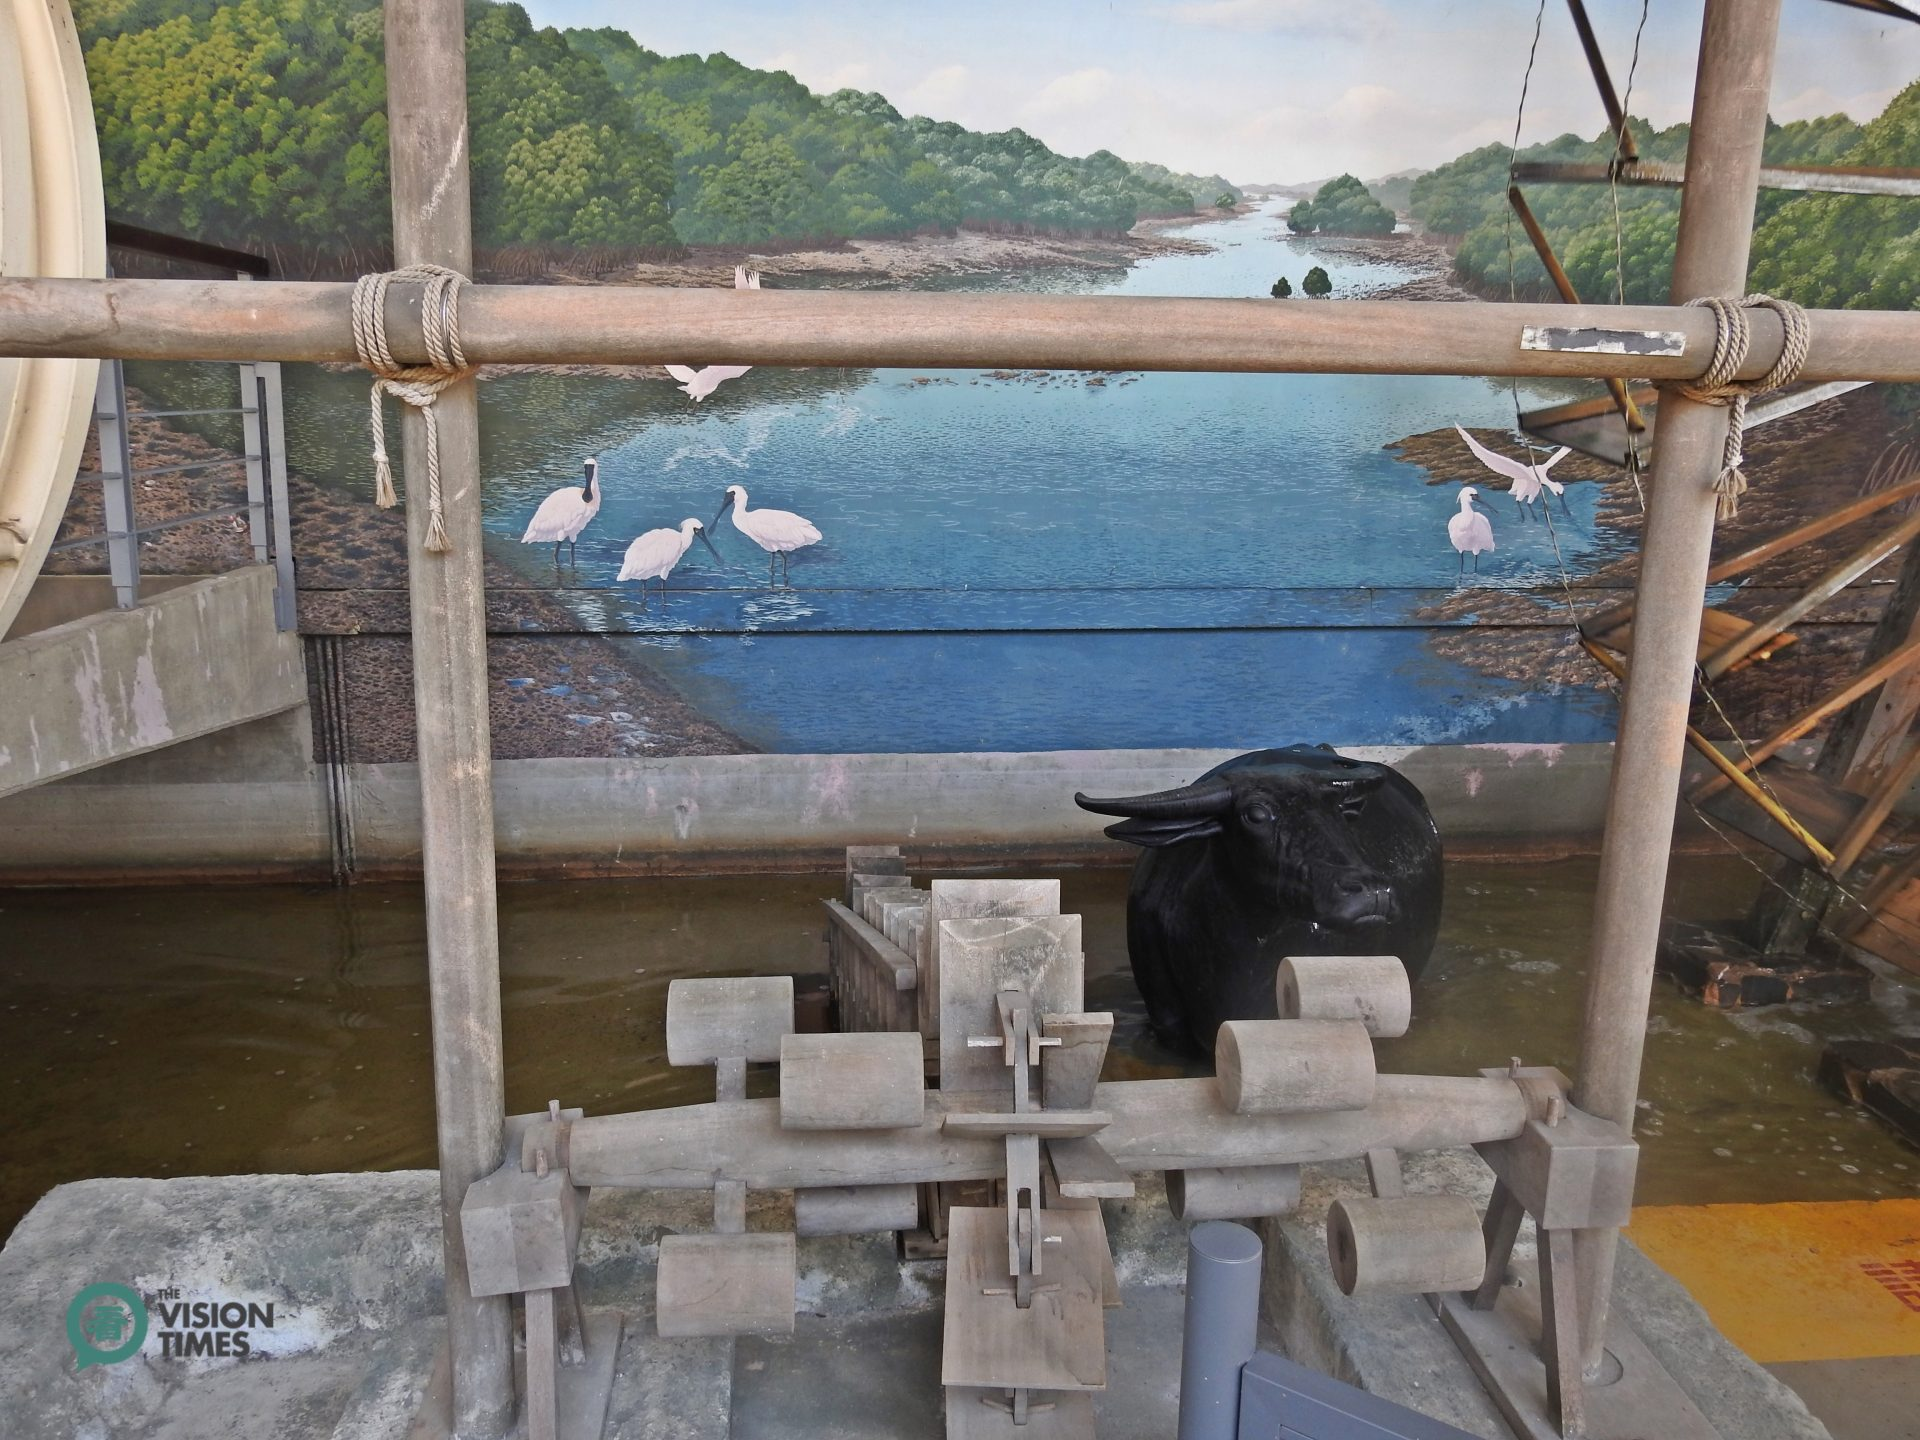 Dragon Bone Water Wheel and water buffalos are important to Taiwanese farmers in the old days. (Image: Billy Shyu / Vision Times)